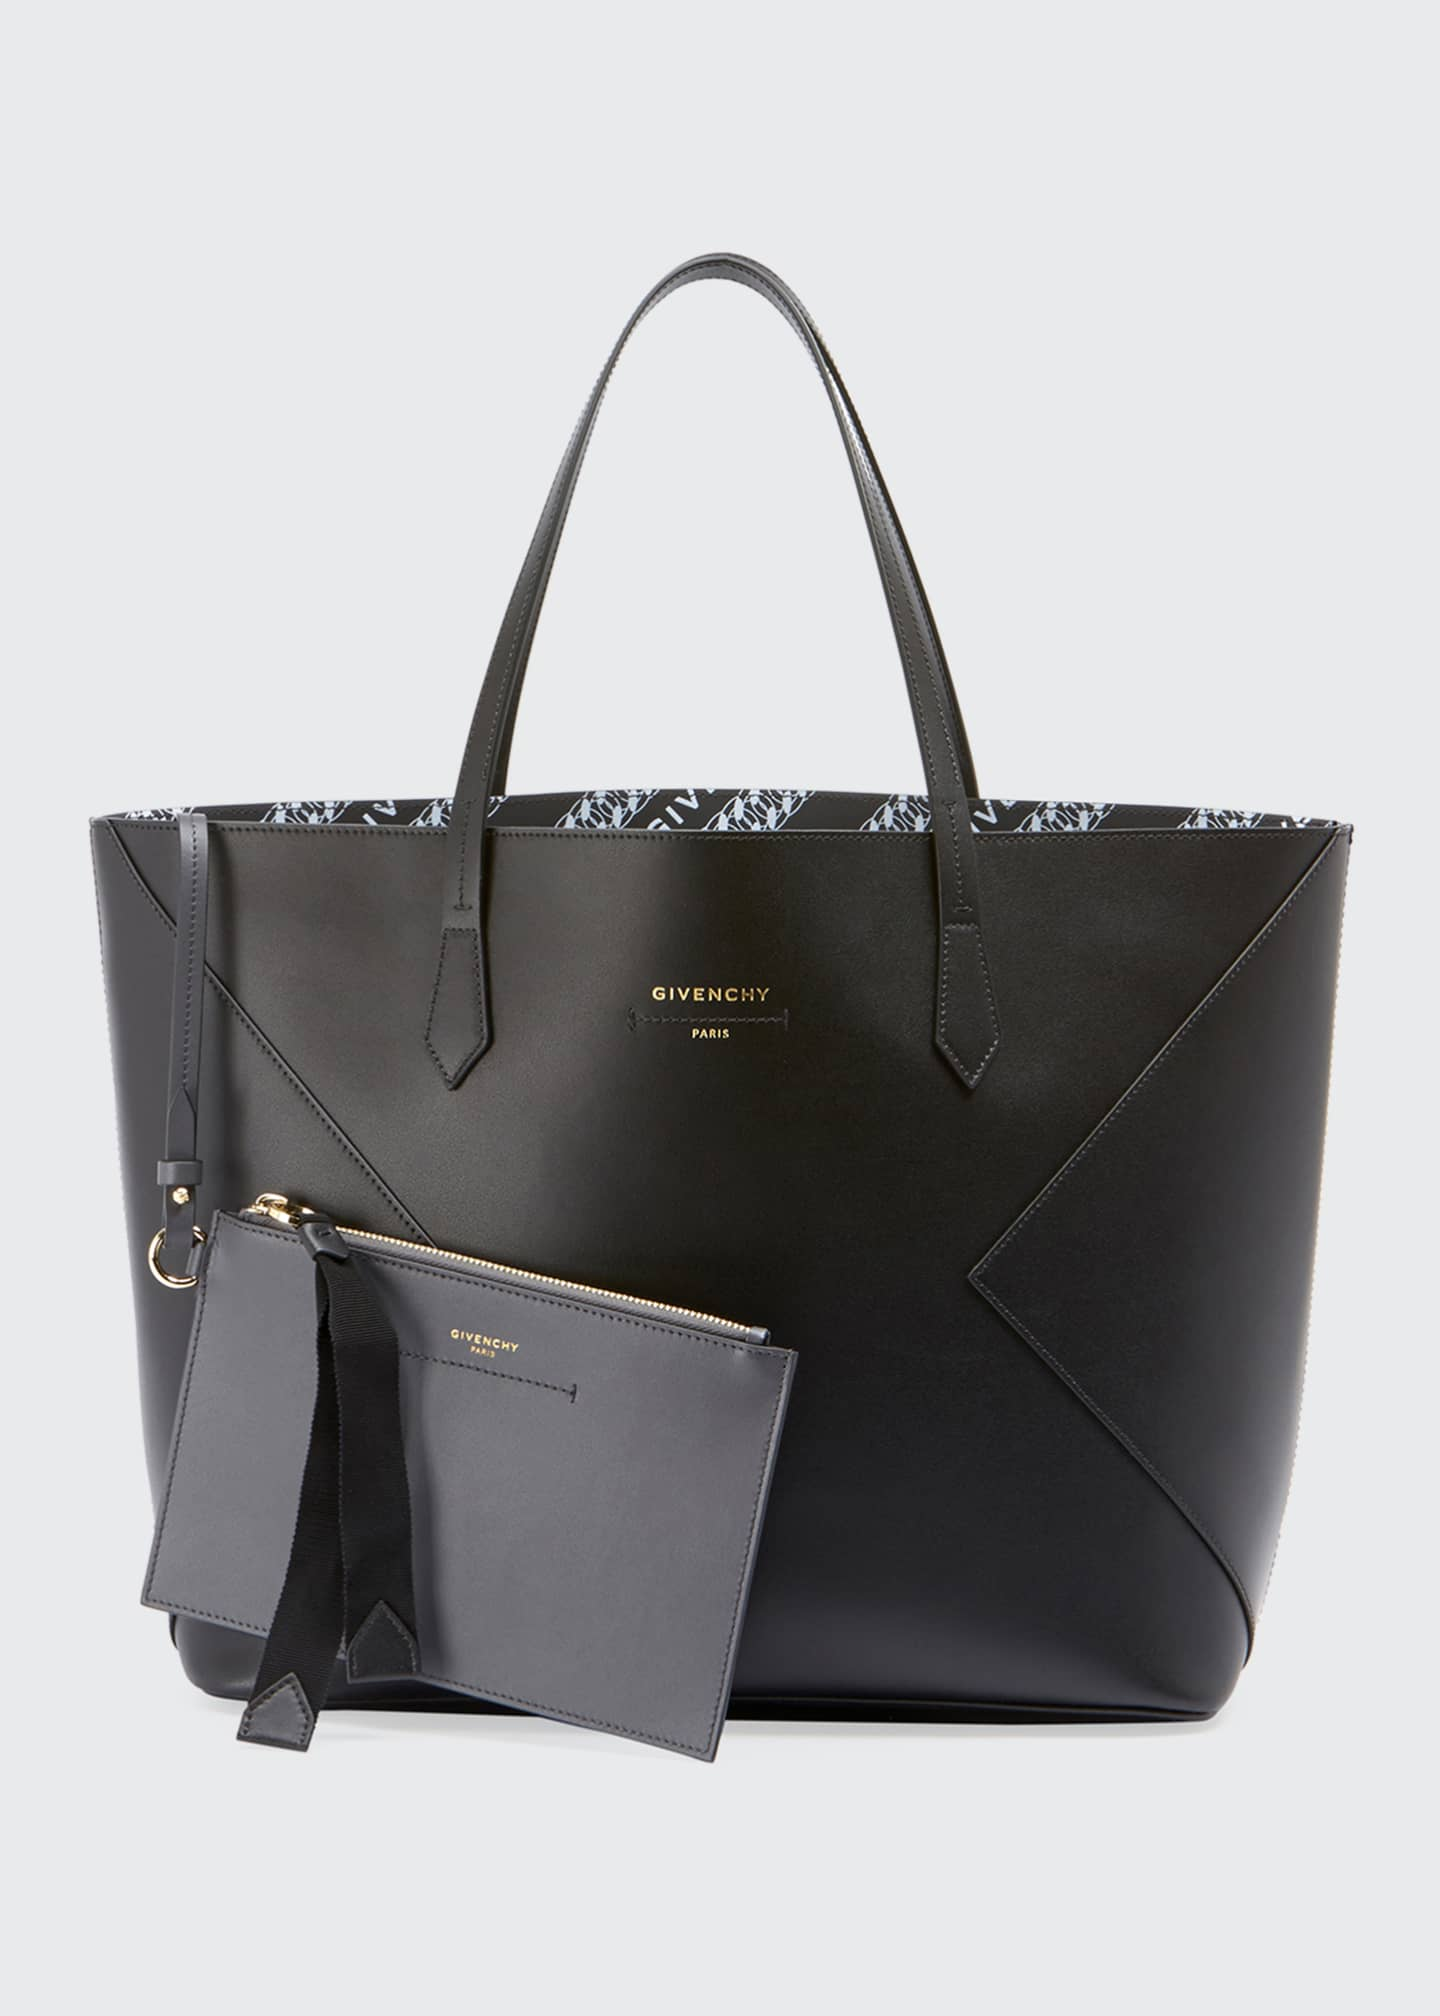 Givenchy Wing Smooth Shopping Tote Bag